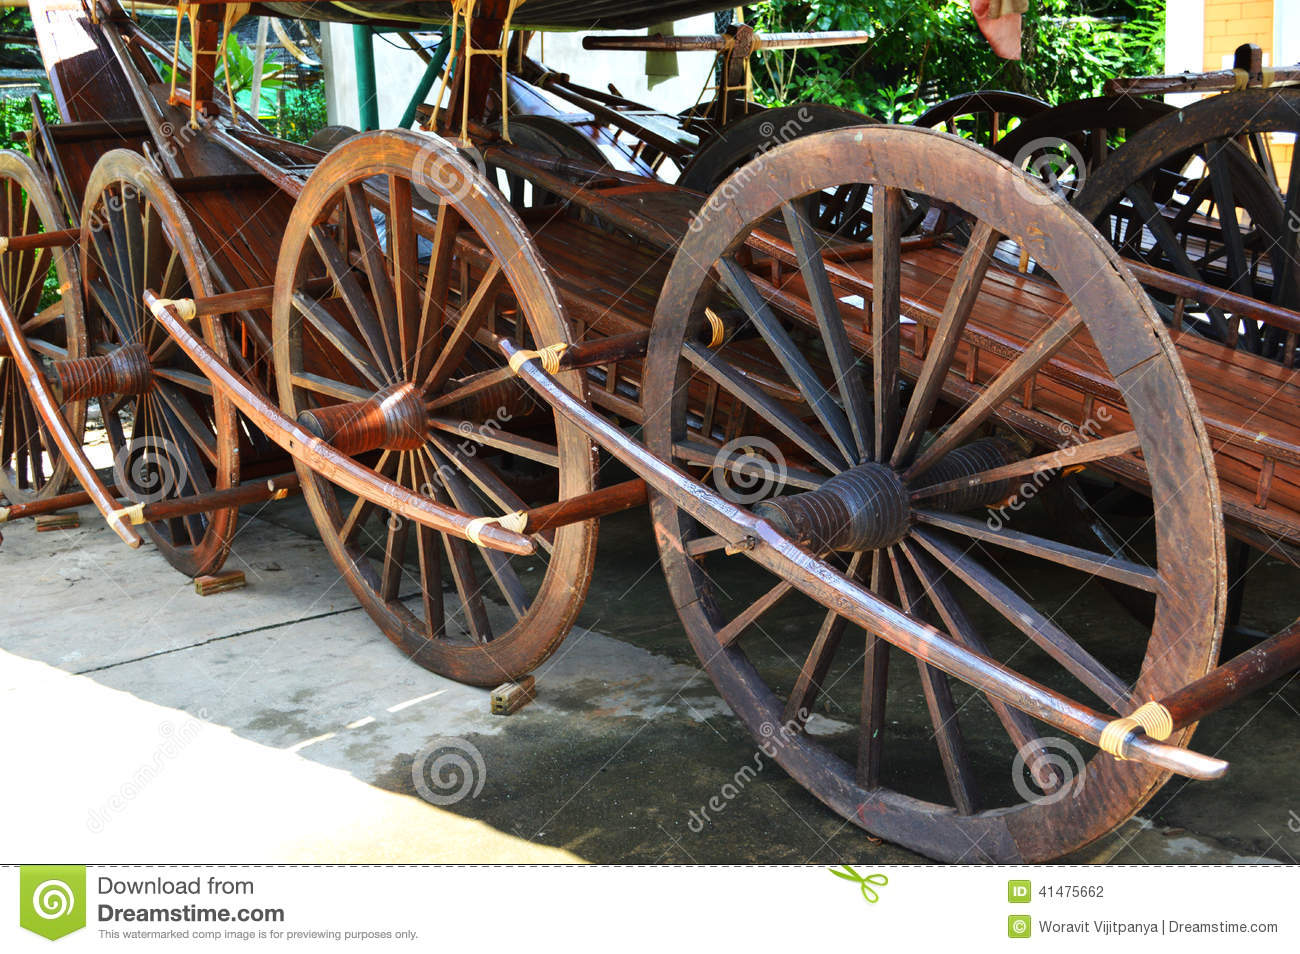 Old Wooden Wheel Stock Photo. Image Of Cart, Shed, Wood